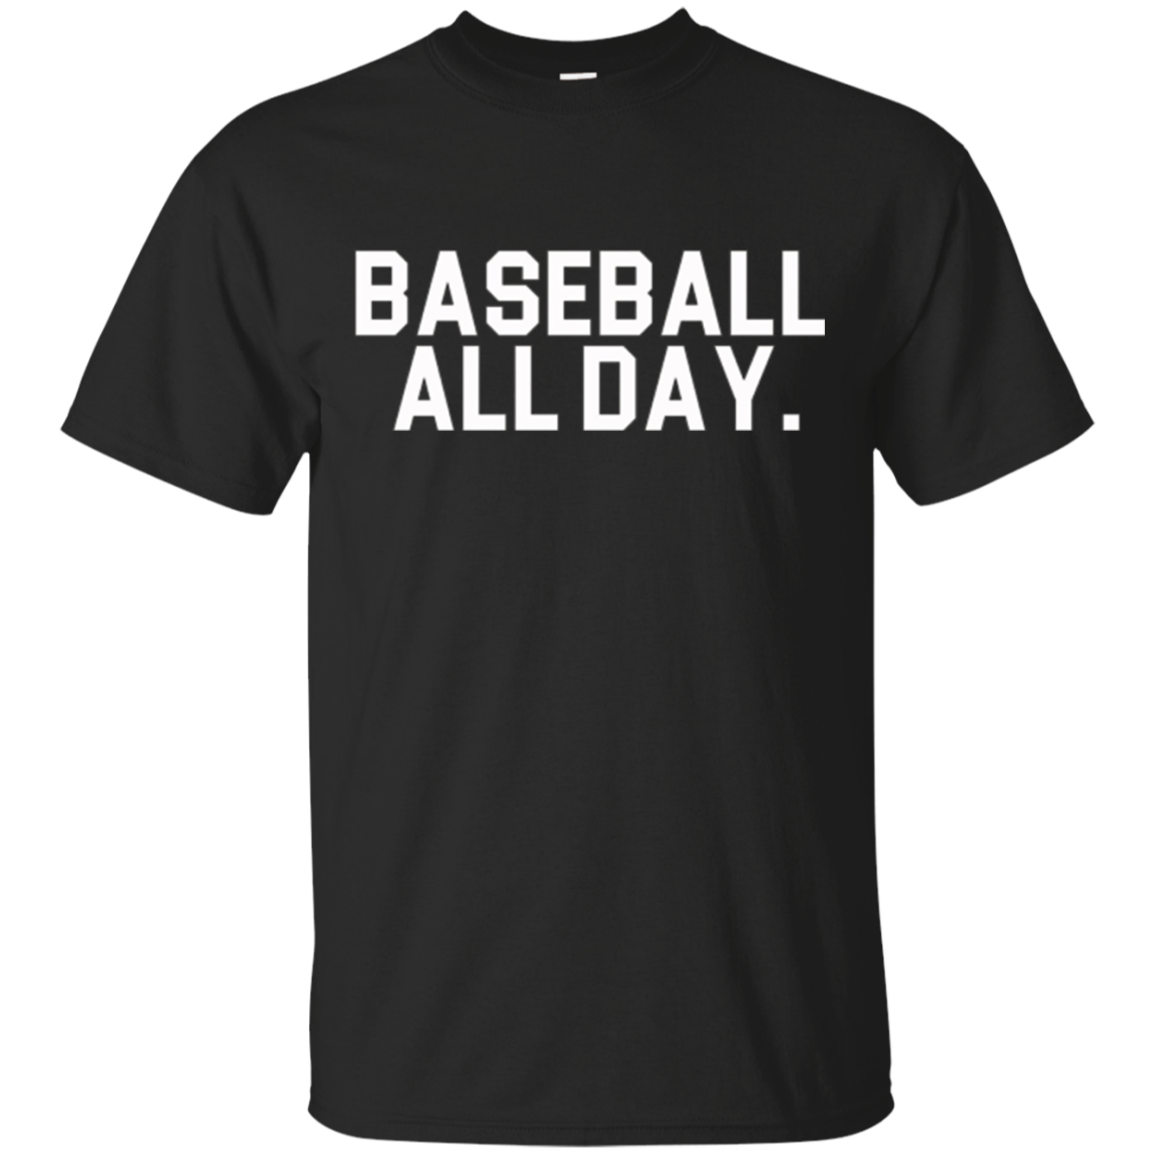 Baseball All Day Sports T shirt for Ball games